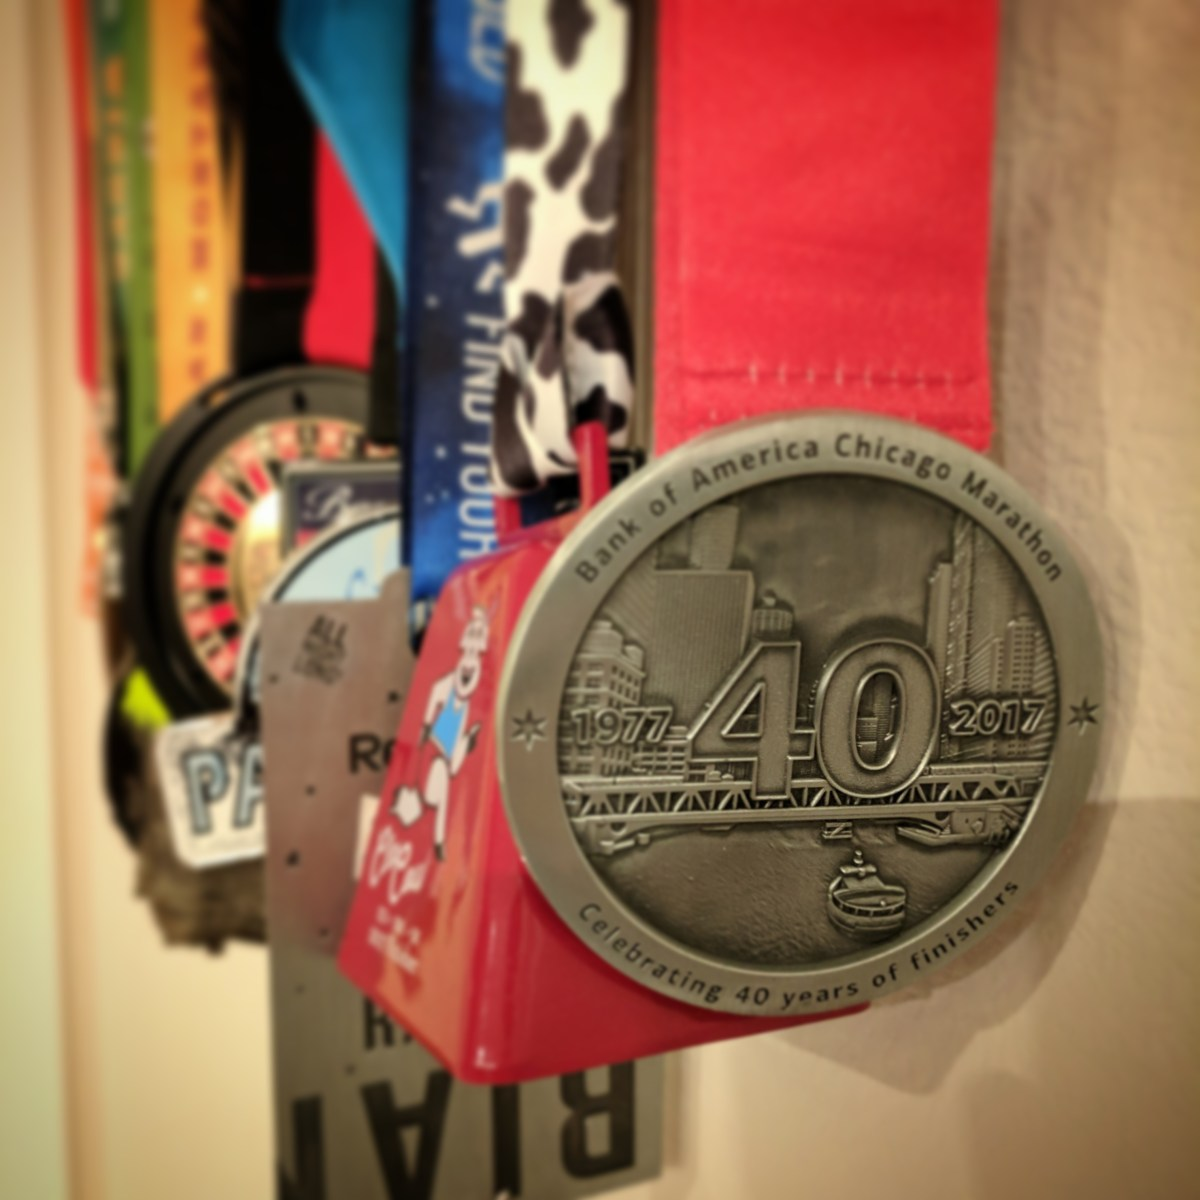 2017 Chicago Marathon - My Experience and Review